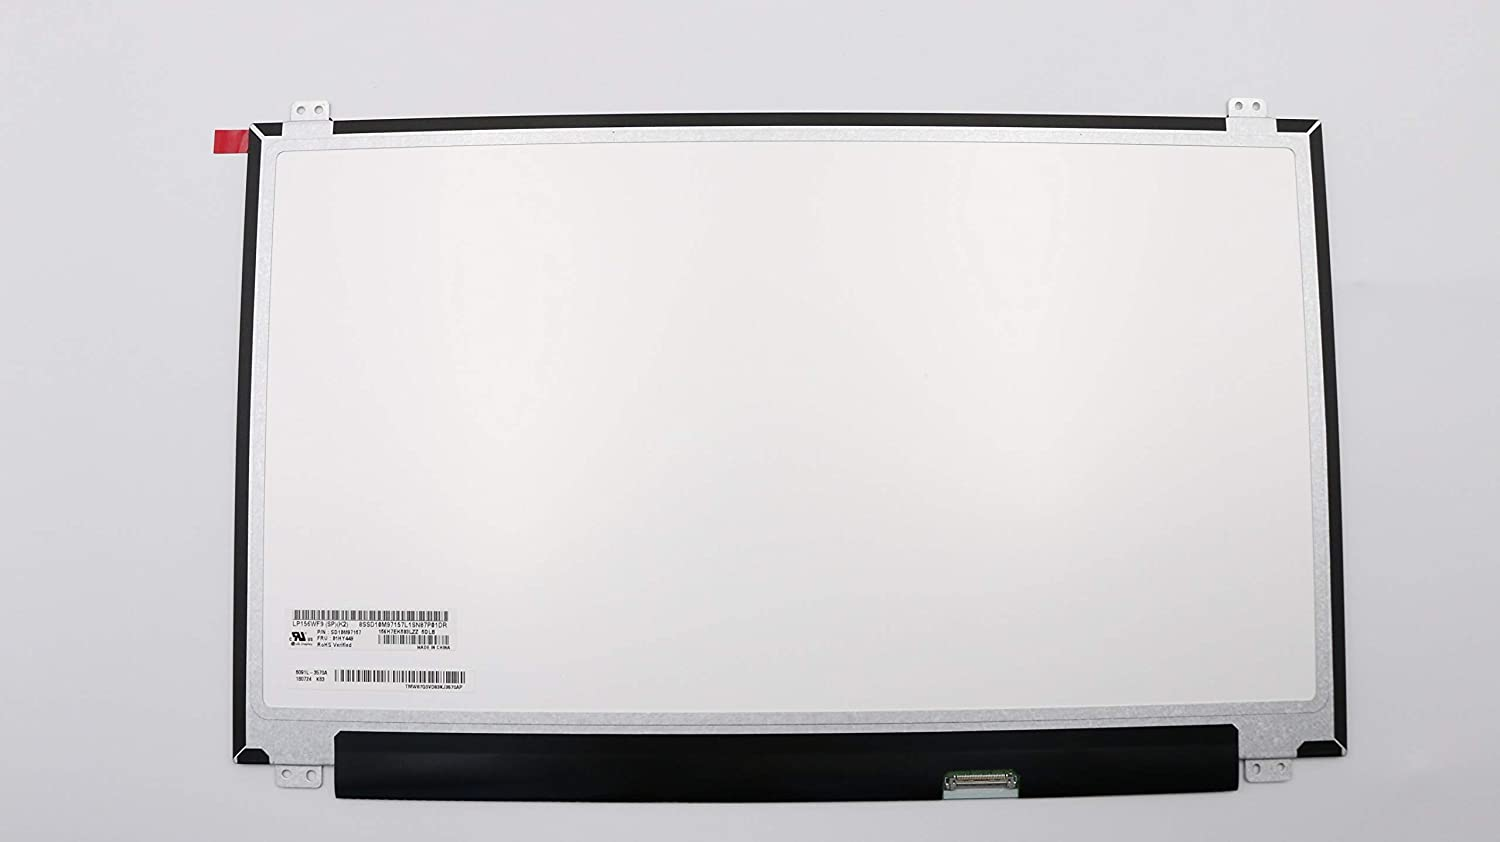 LCD Screen IPS LED Display Panel Only Fits Lenovo Thinkpad FRU: 01HY450 01HY451 Non-Touch JYLTK New Genuine 15.6 FHD 1920x1080